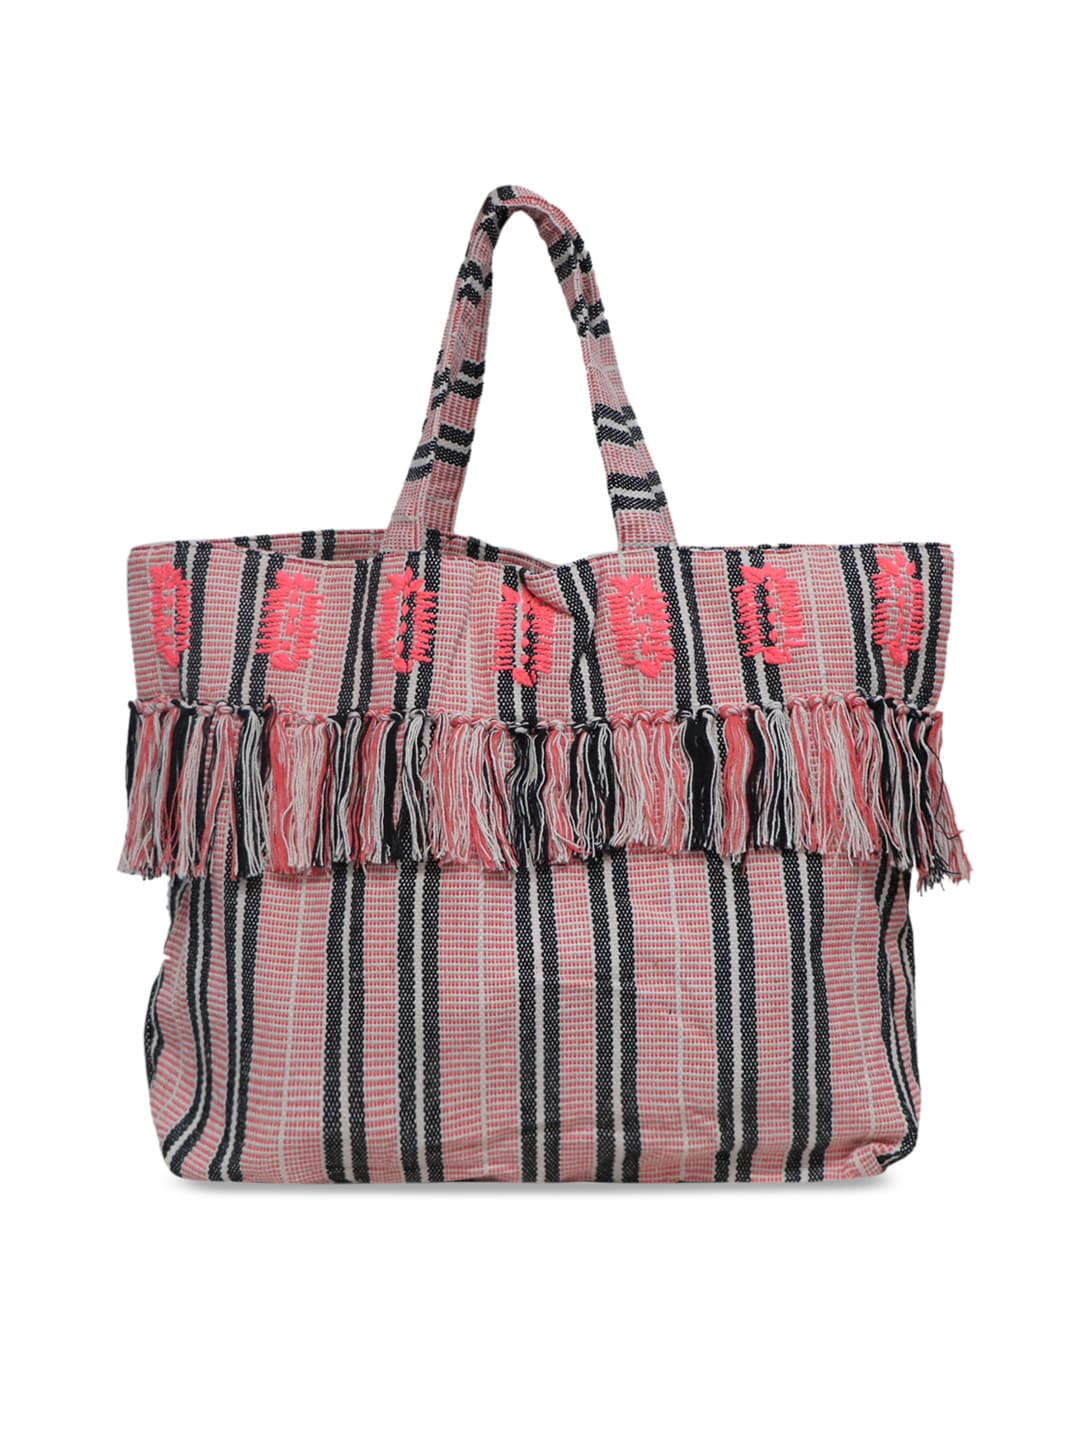 e1ccc1c6b9 Tote Bag - Buy Latest Tote Bags For Women   Girls Online